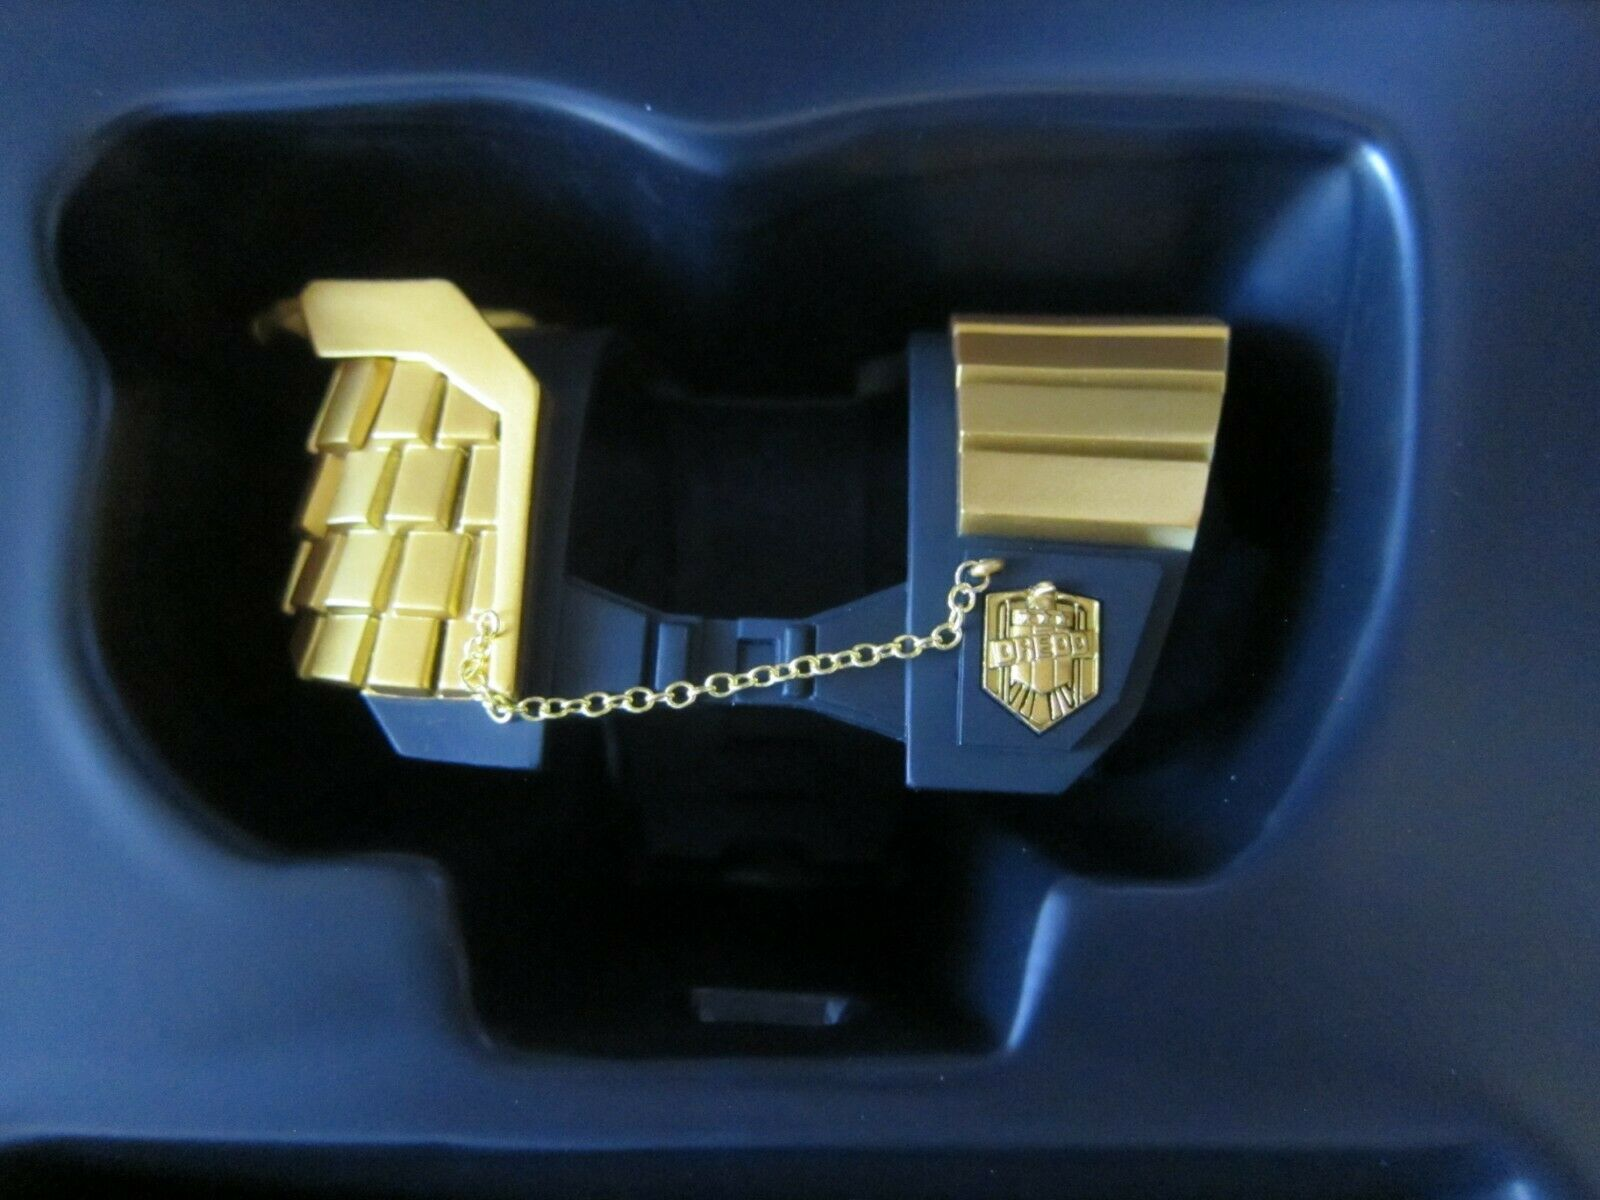 VTS 1 6    JUSTICE JUDGE  JUDGE DREDD - SHOULDER ARMOR+CHEST EMBLEM - US SELLER 25fefd